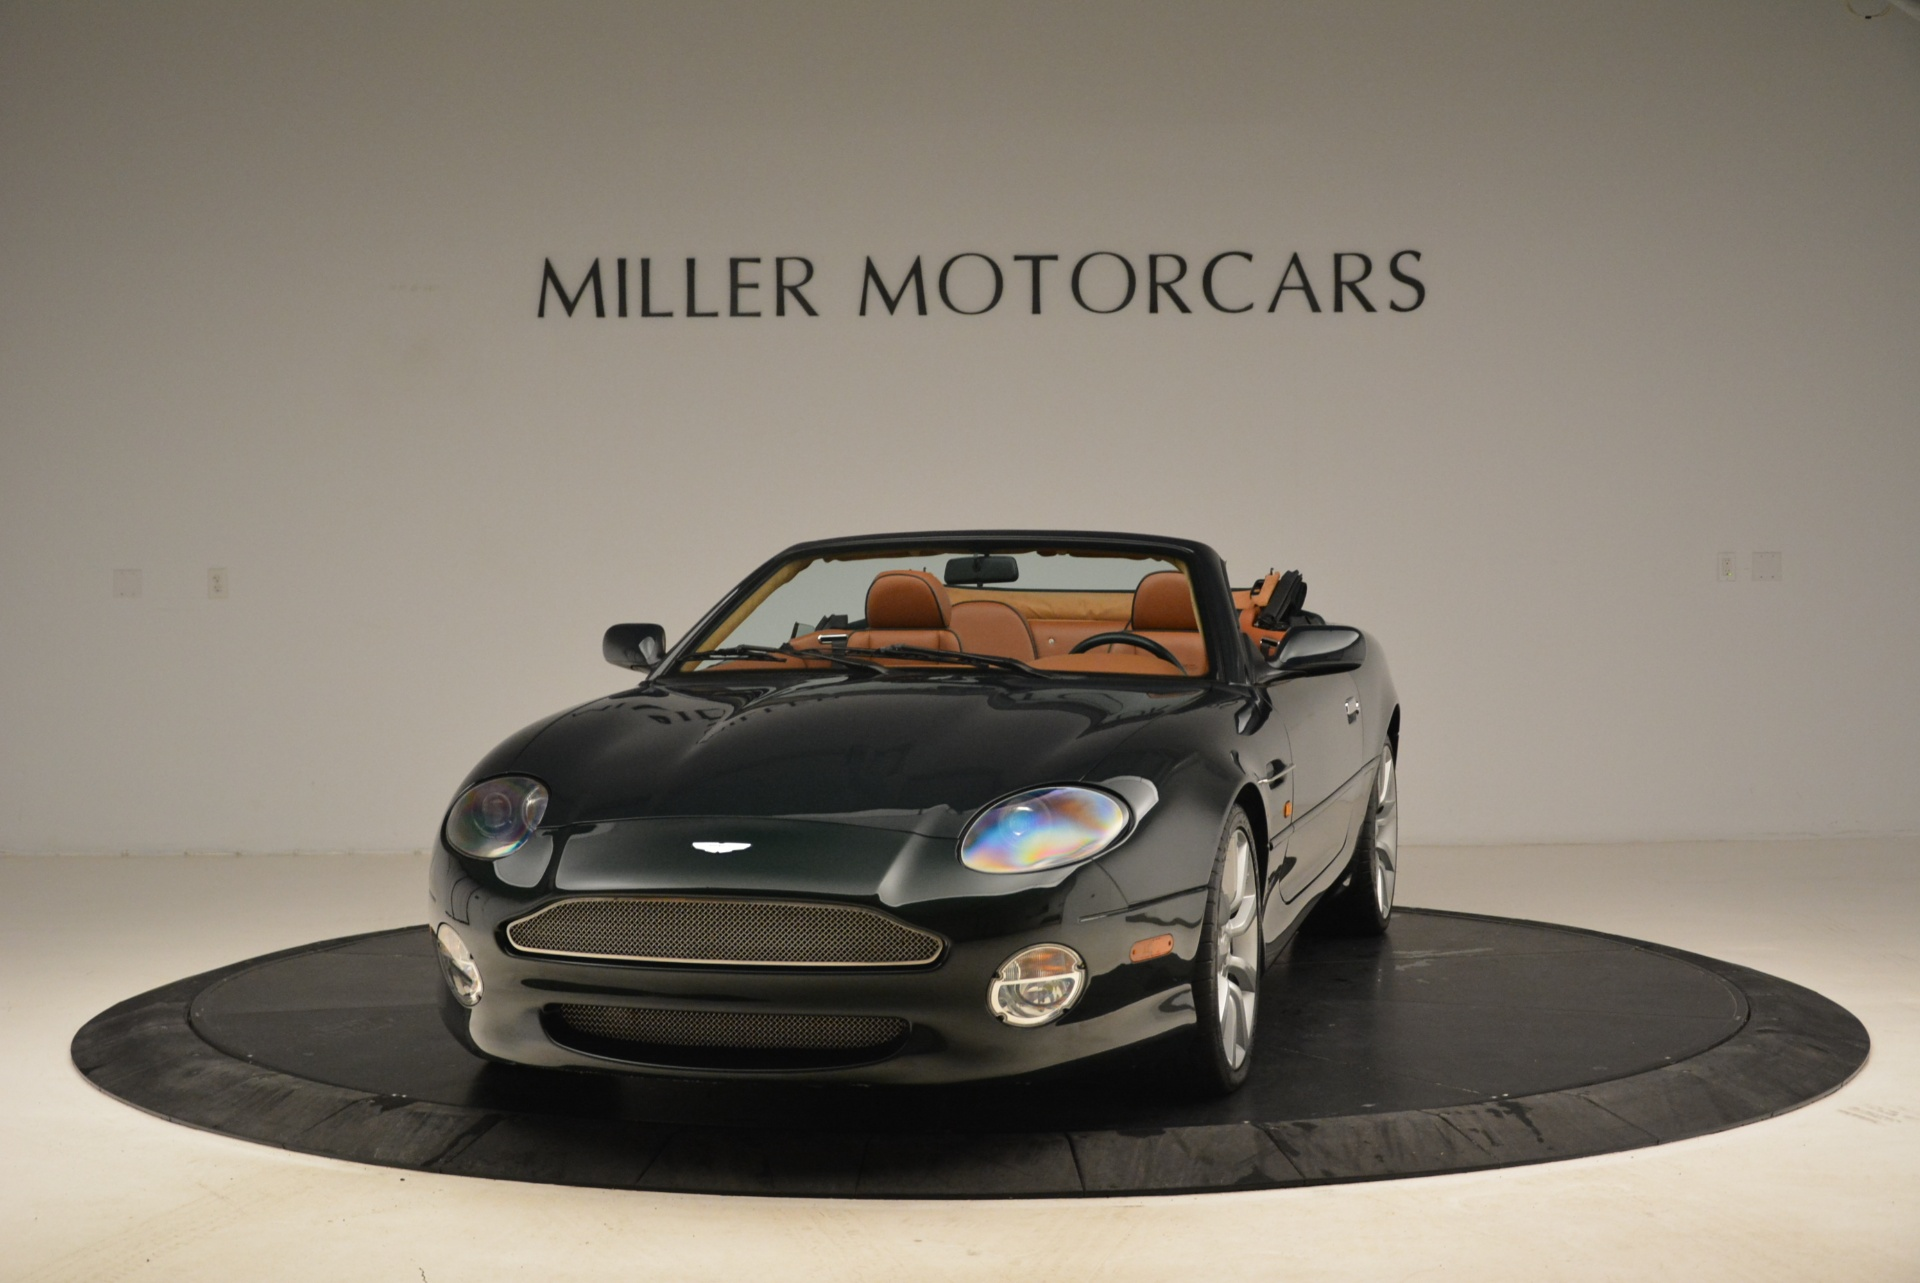 Used 2003 Aston Martin DB7 Vantage Volante for sale Sold at McLaren Greenwich in Greenwich CT 06830 1